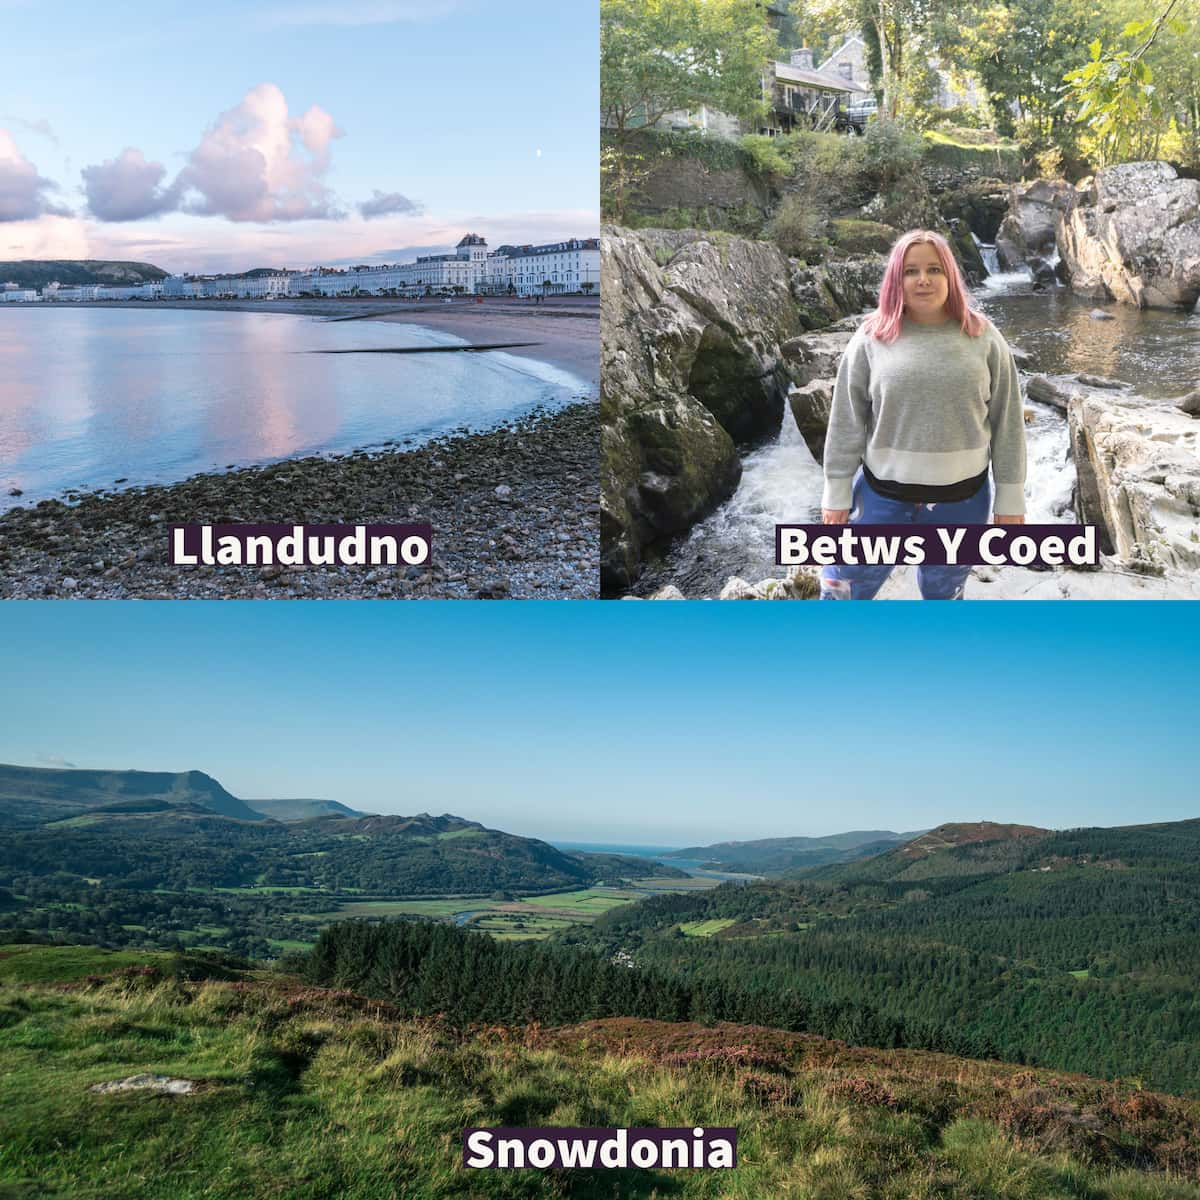 top left, beach view of Llandudno with sea front houses, top right Kat standing at a waterfall in Betws Y Coed and bottom view from a walk in Snowdonia.